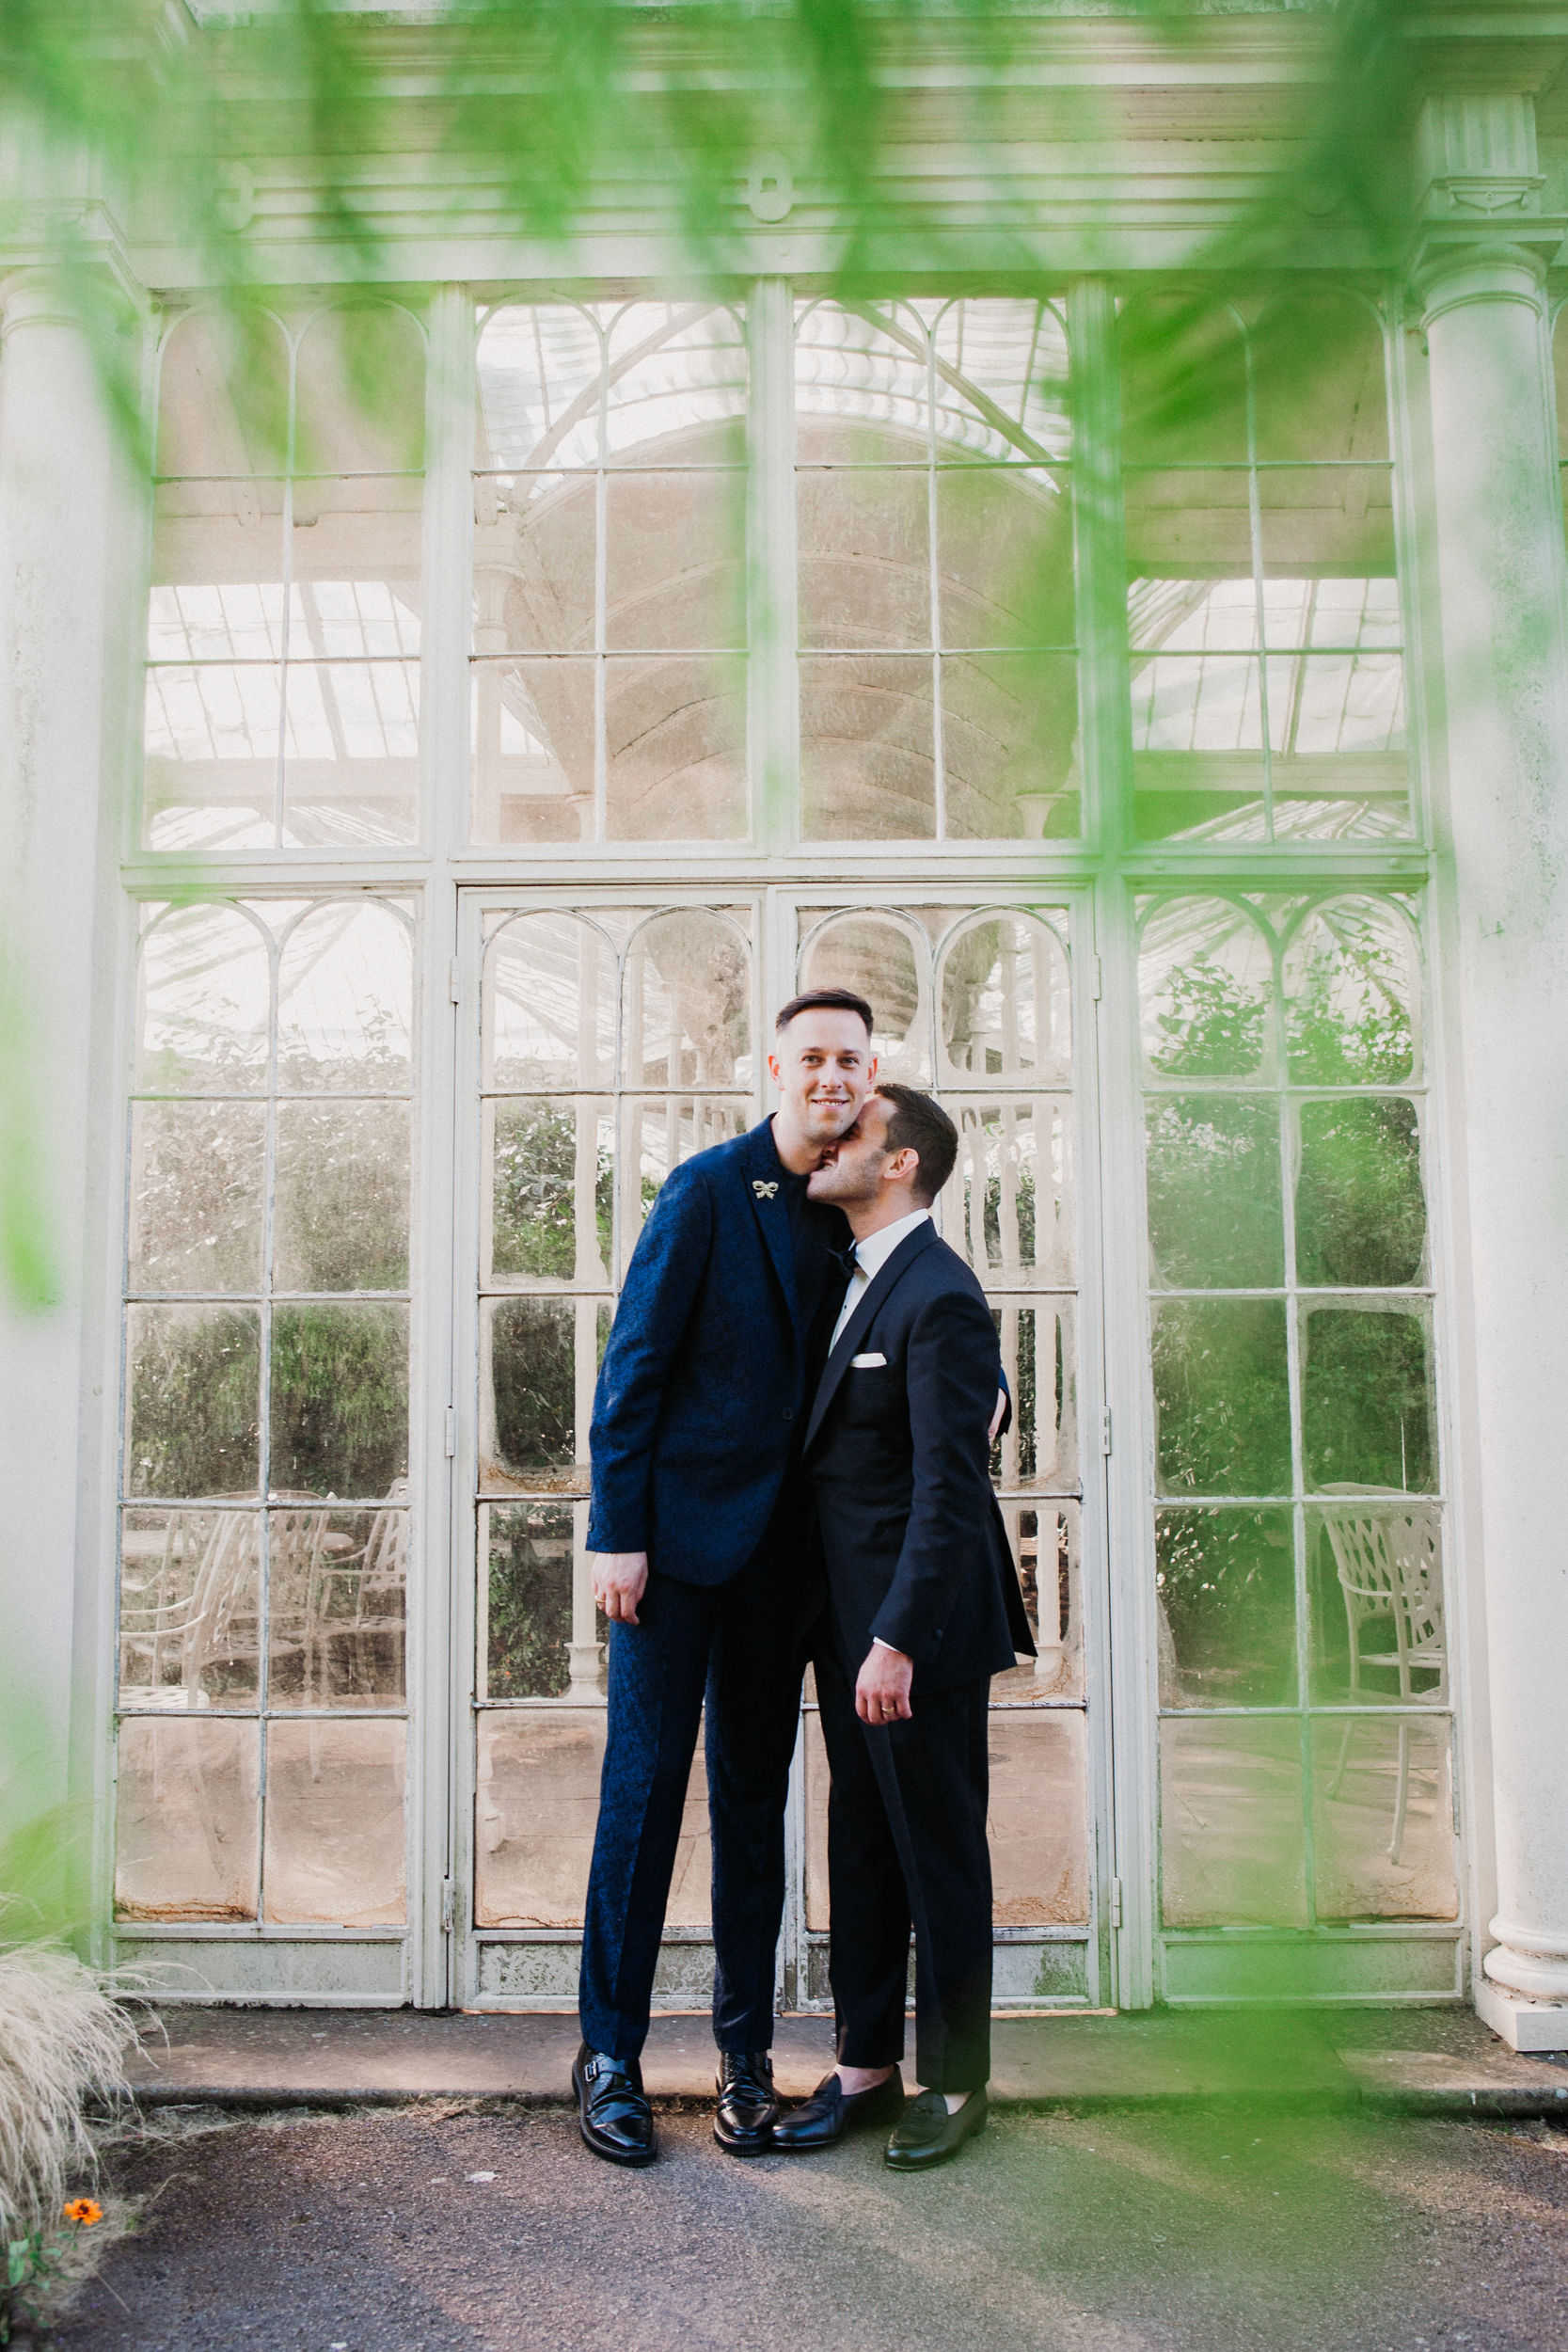 Jon & Joey - Wollaton Hall Wedding